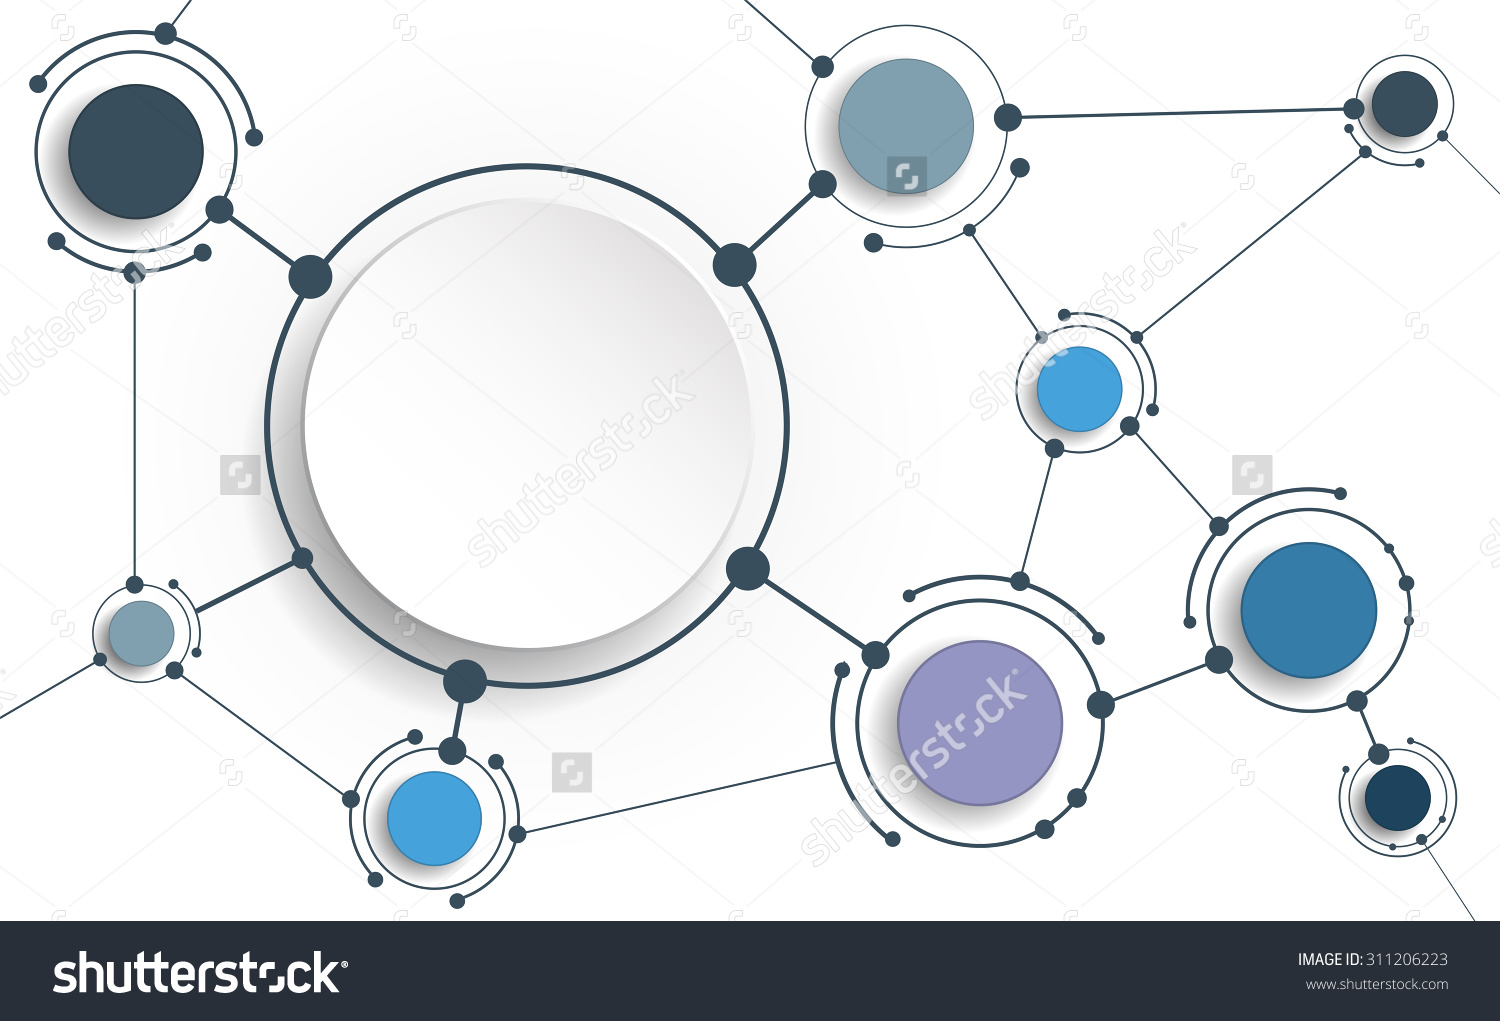 stock-vector-vector-abstract-molecules-with-d-paper-on-light-gray-background-communication-social-media-311206223